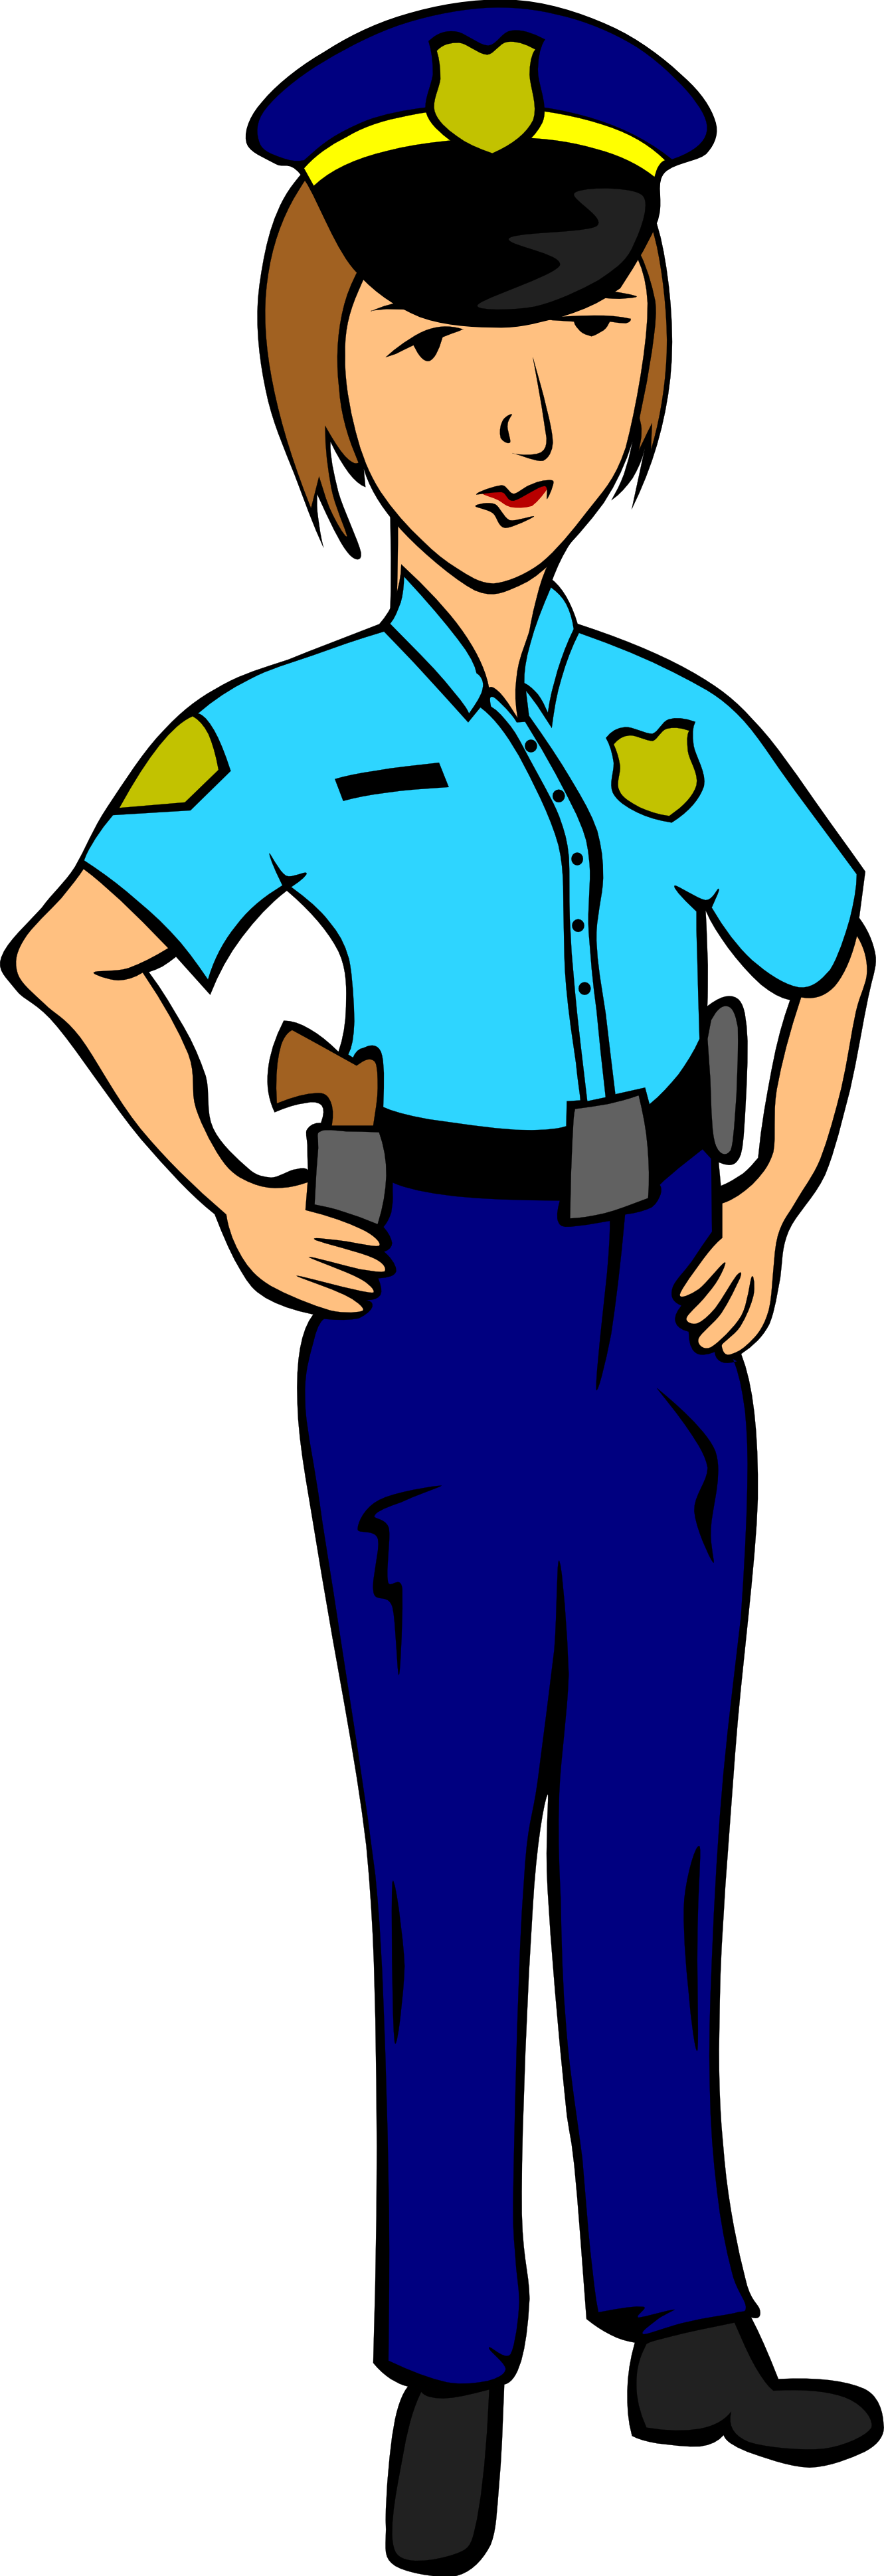 Dress clipart police. Images clip art policeman